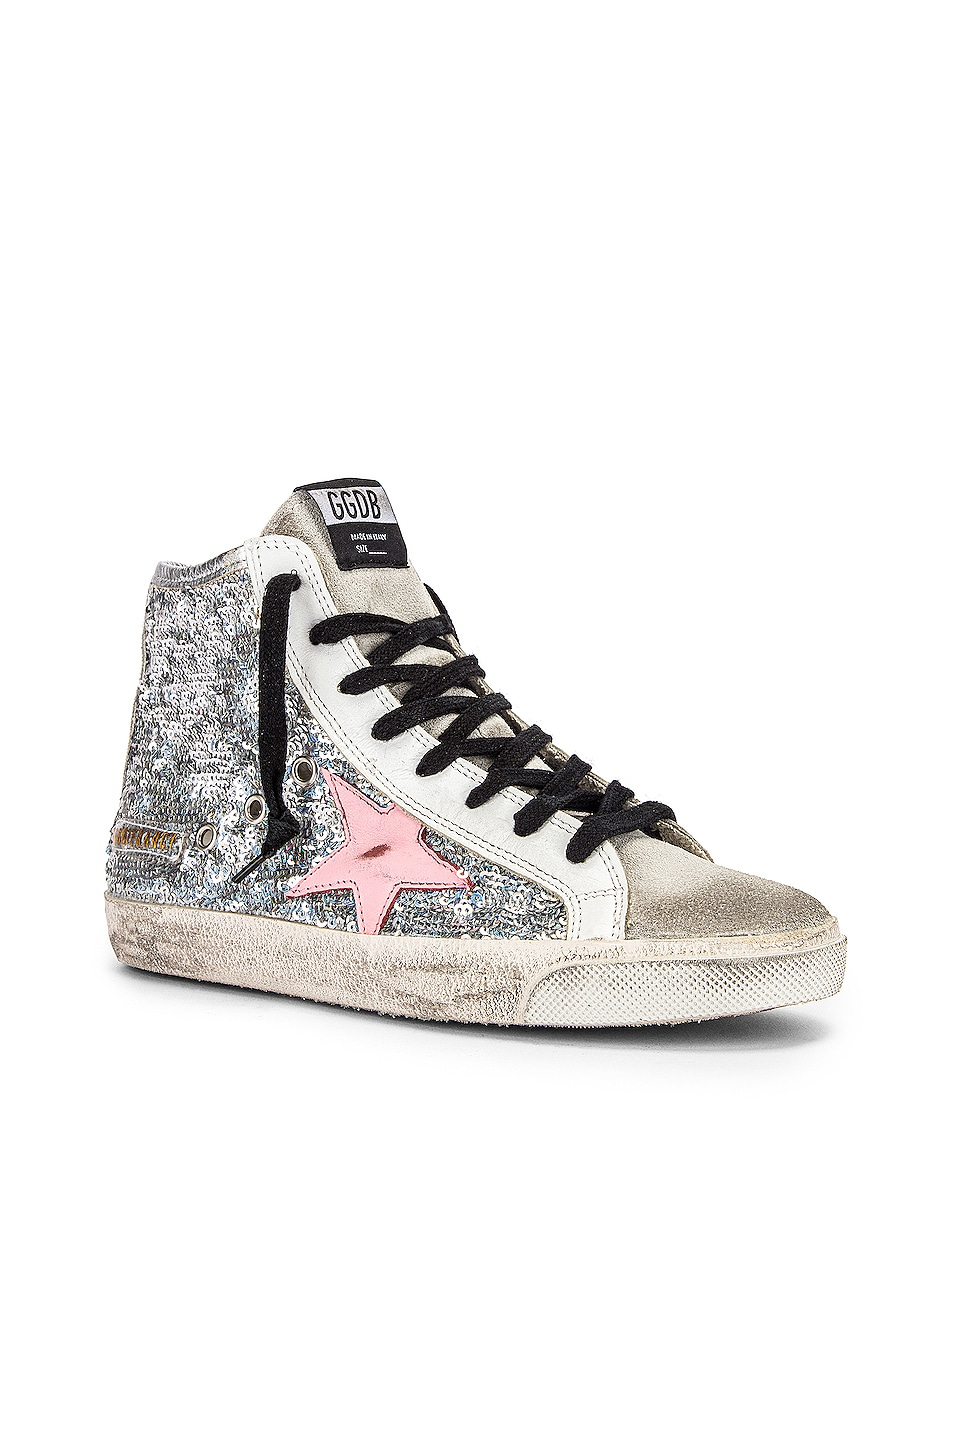 Image 2 of Golden Goose Francy Sneaker in Silver Paillettes & Pink